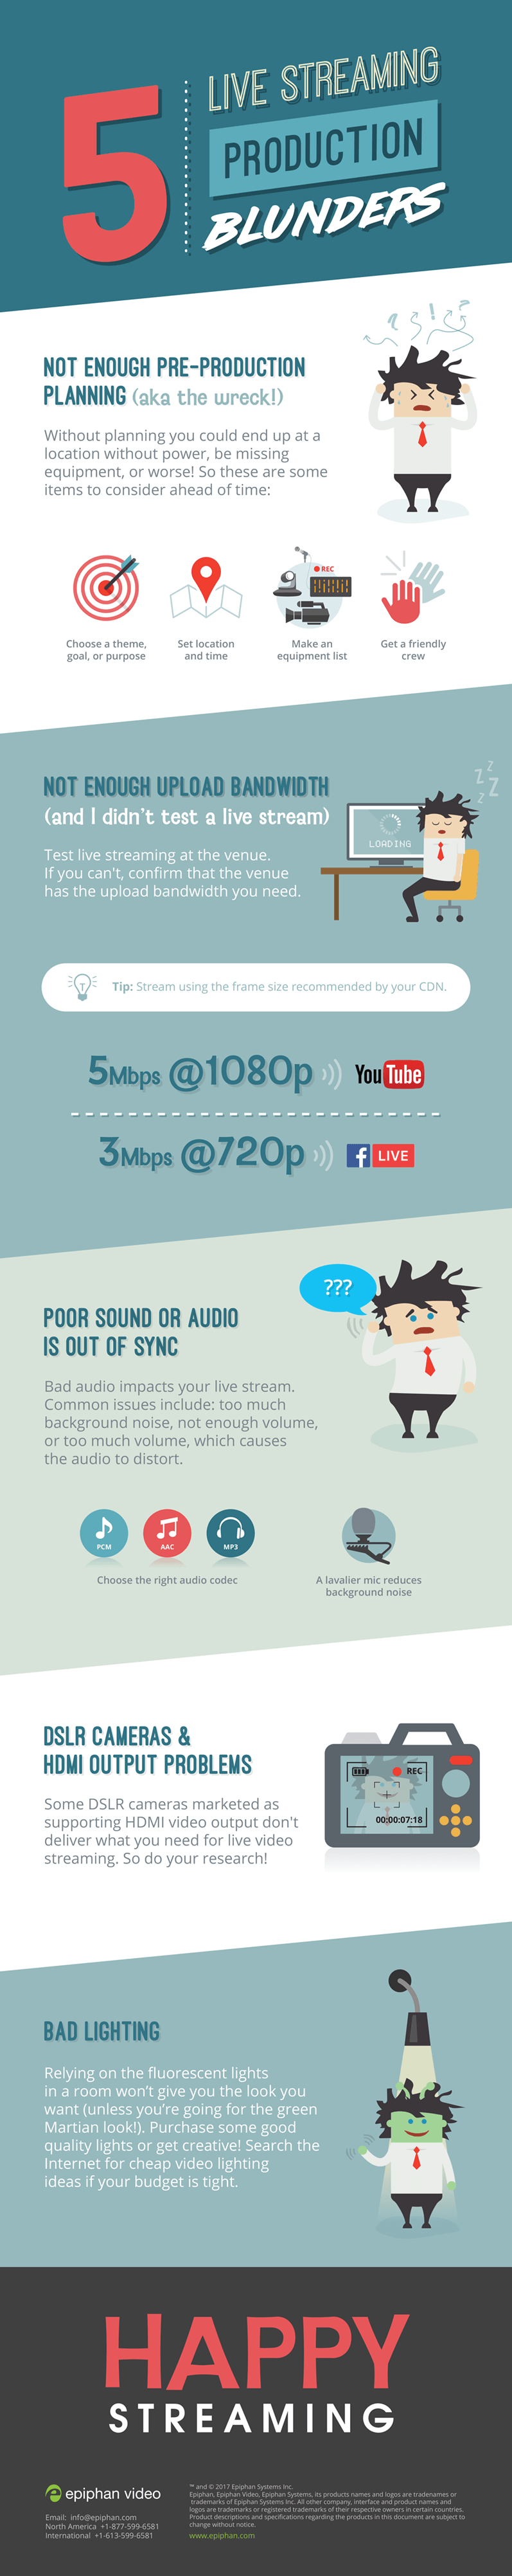 [Infographic] 5 live video streaming production blunders